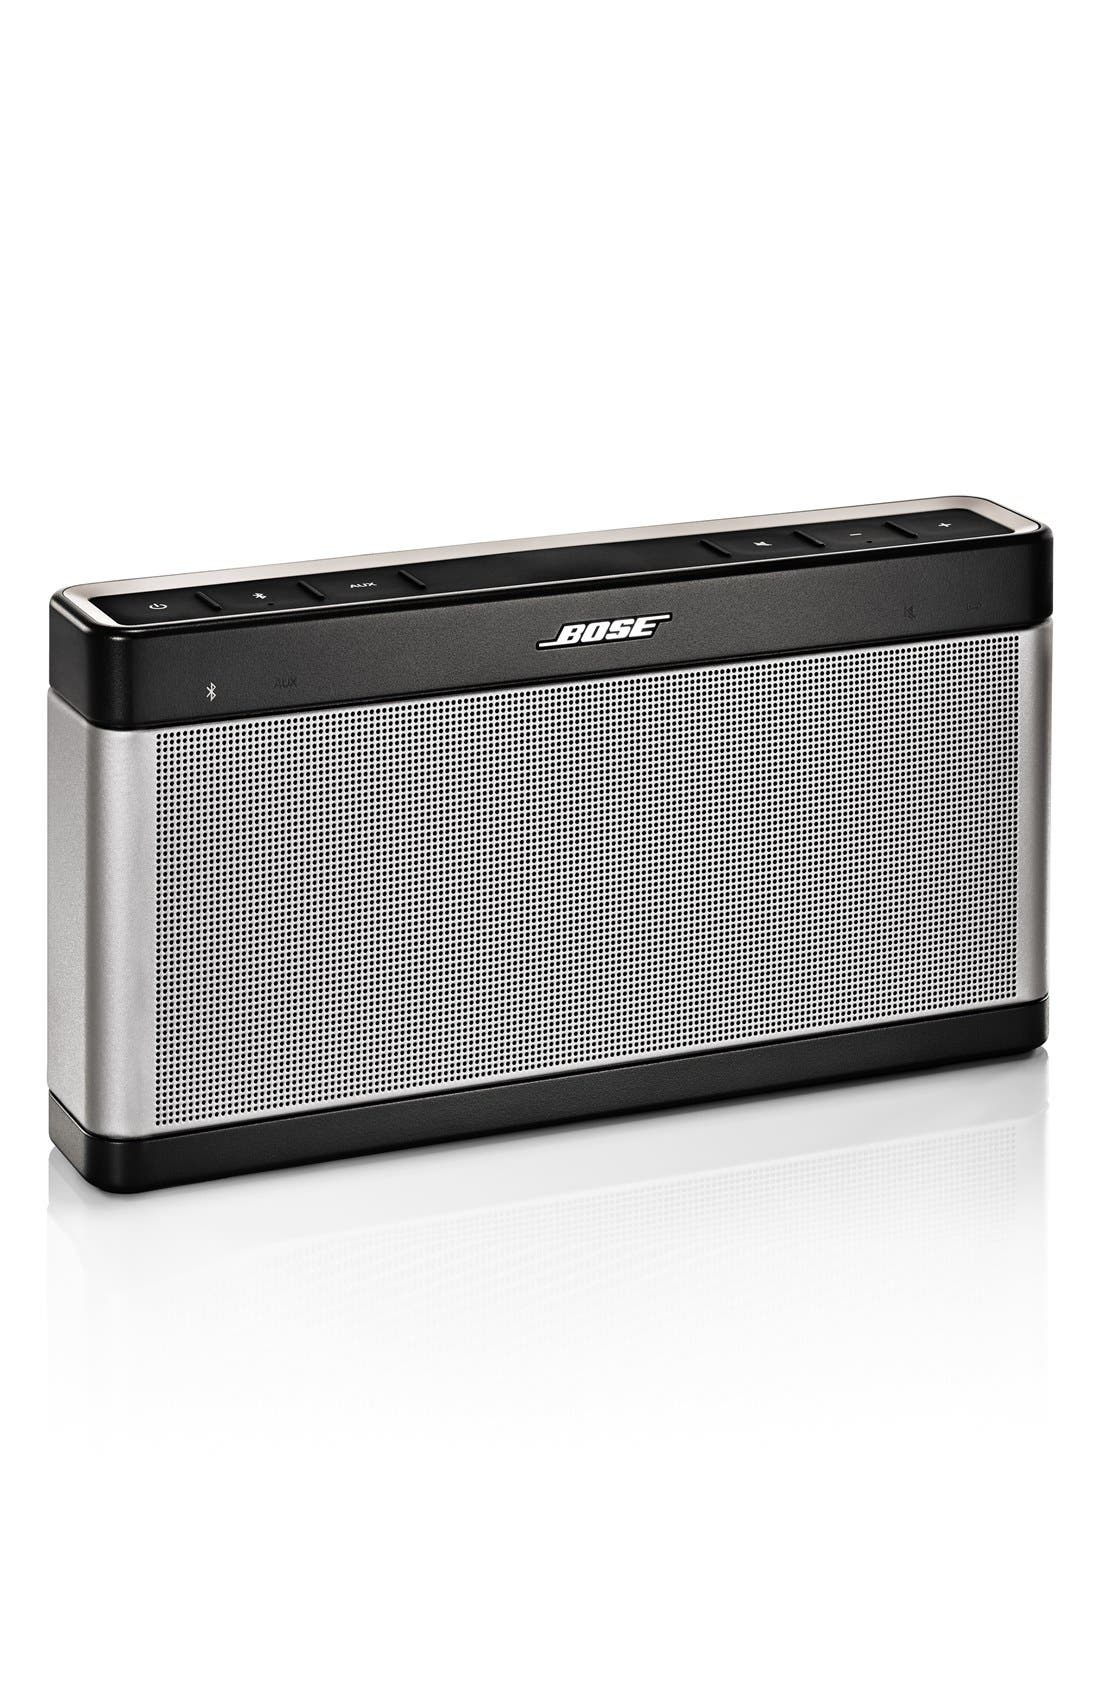 Alternate Image 1 Selected - Bose® SoundLink® Bluetooth® Mobile Speaker III